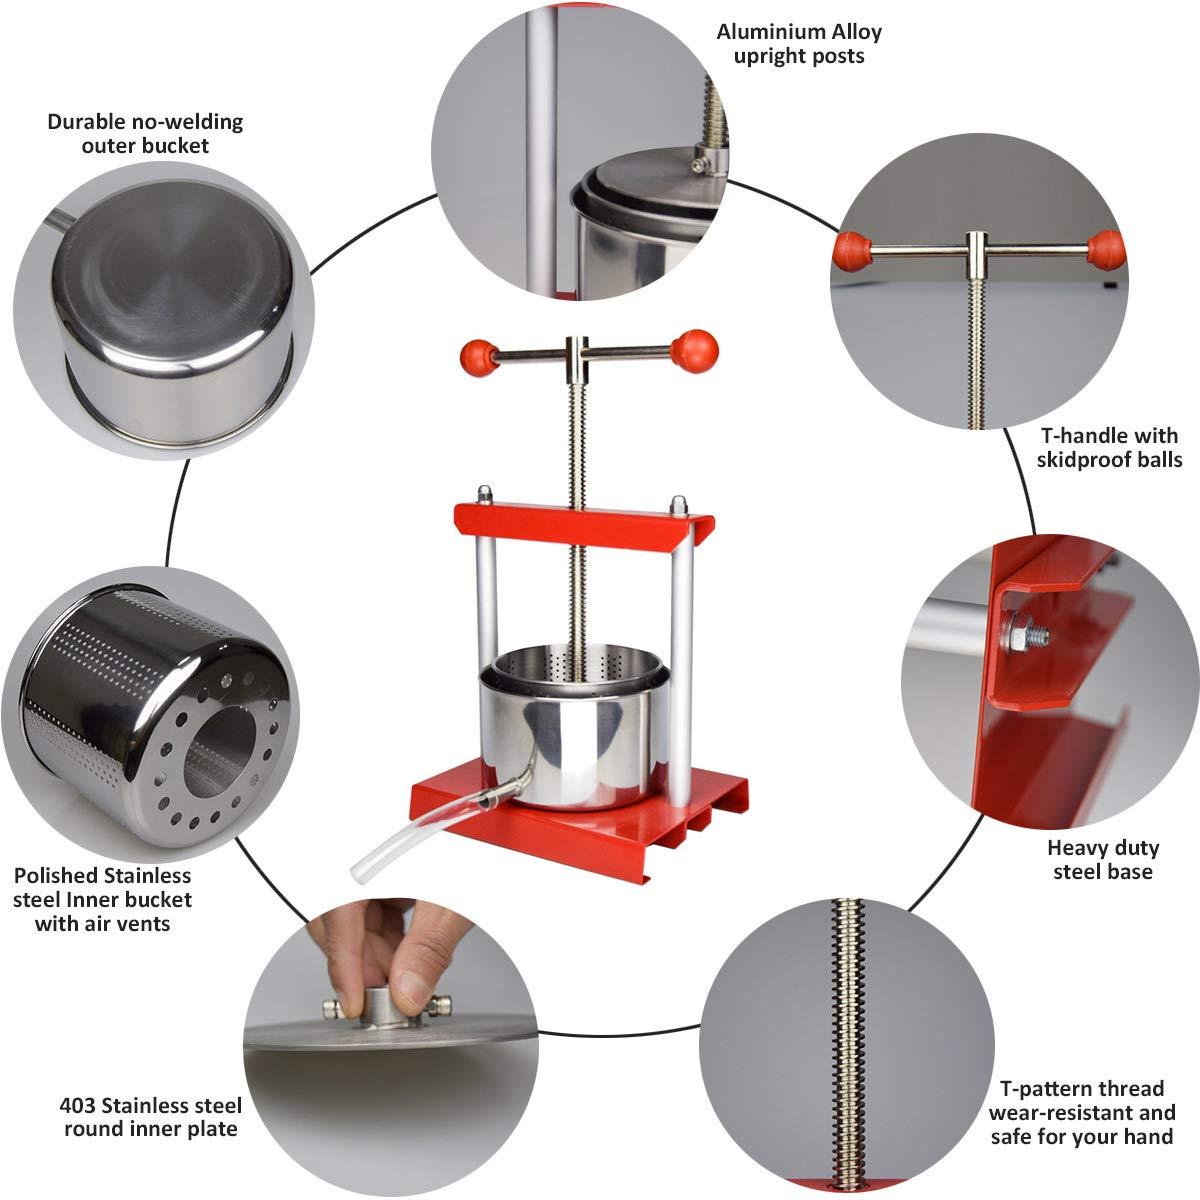 EJWOX 1.6 Gallon Stainless Steel Soft Fruit Wine Juice Press Cheese Making Press Tincture Press Herbal Press